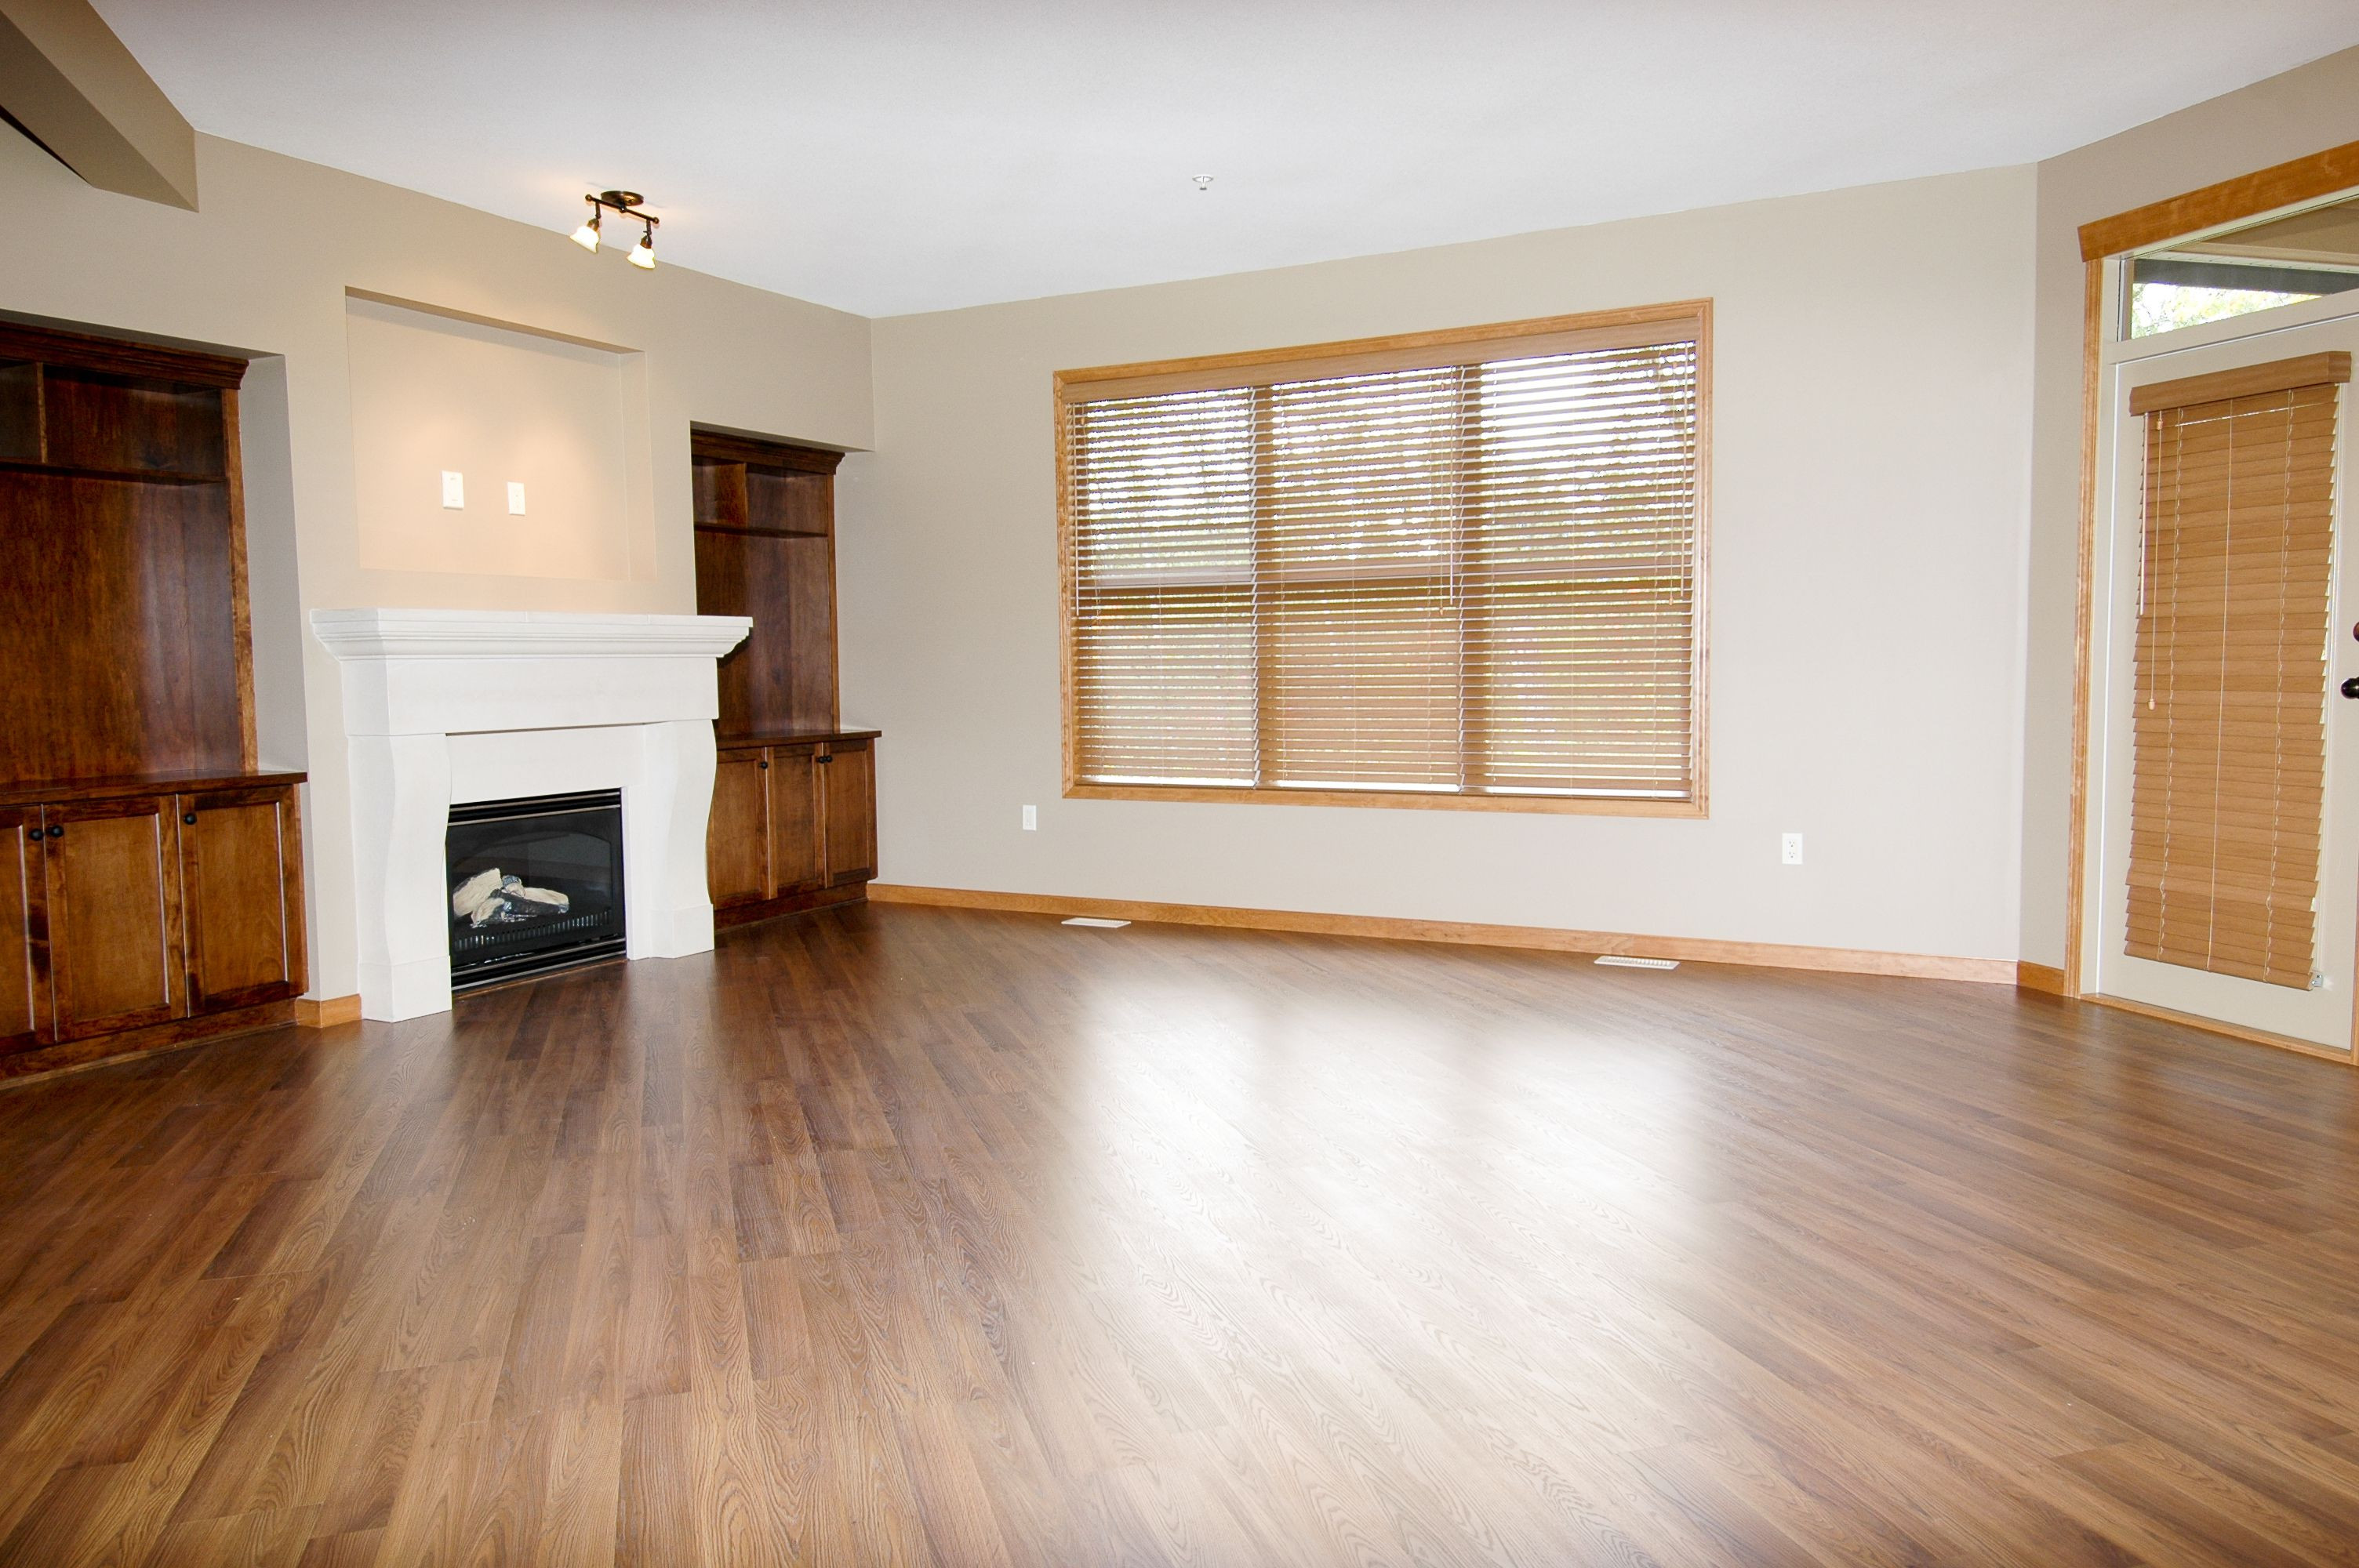 indoor humidity for hardwood floors of how to reduce and prevent static on laminate flooring for large empty room with fireplace and wood flooring 172401085 587573903df78c17b6de8379